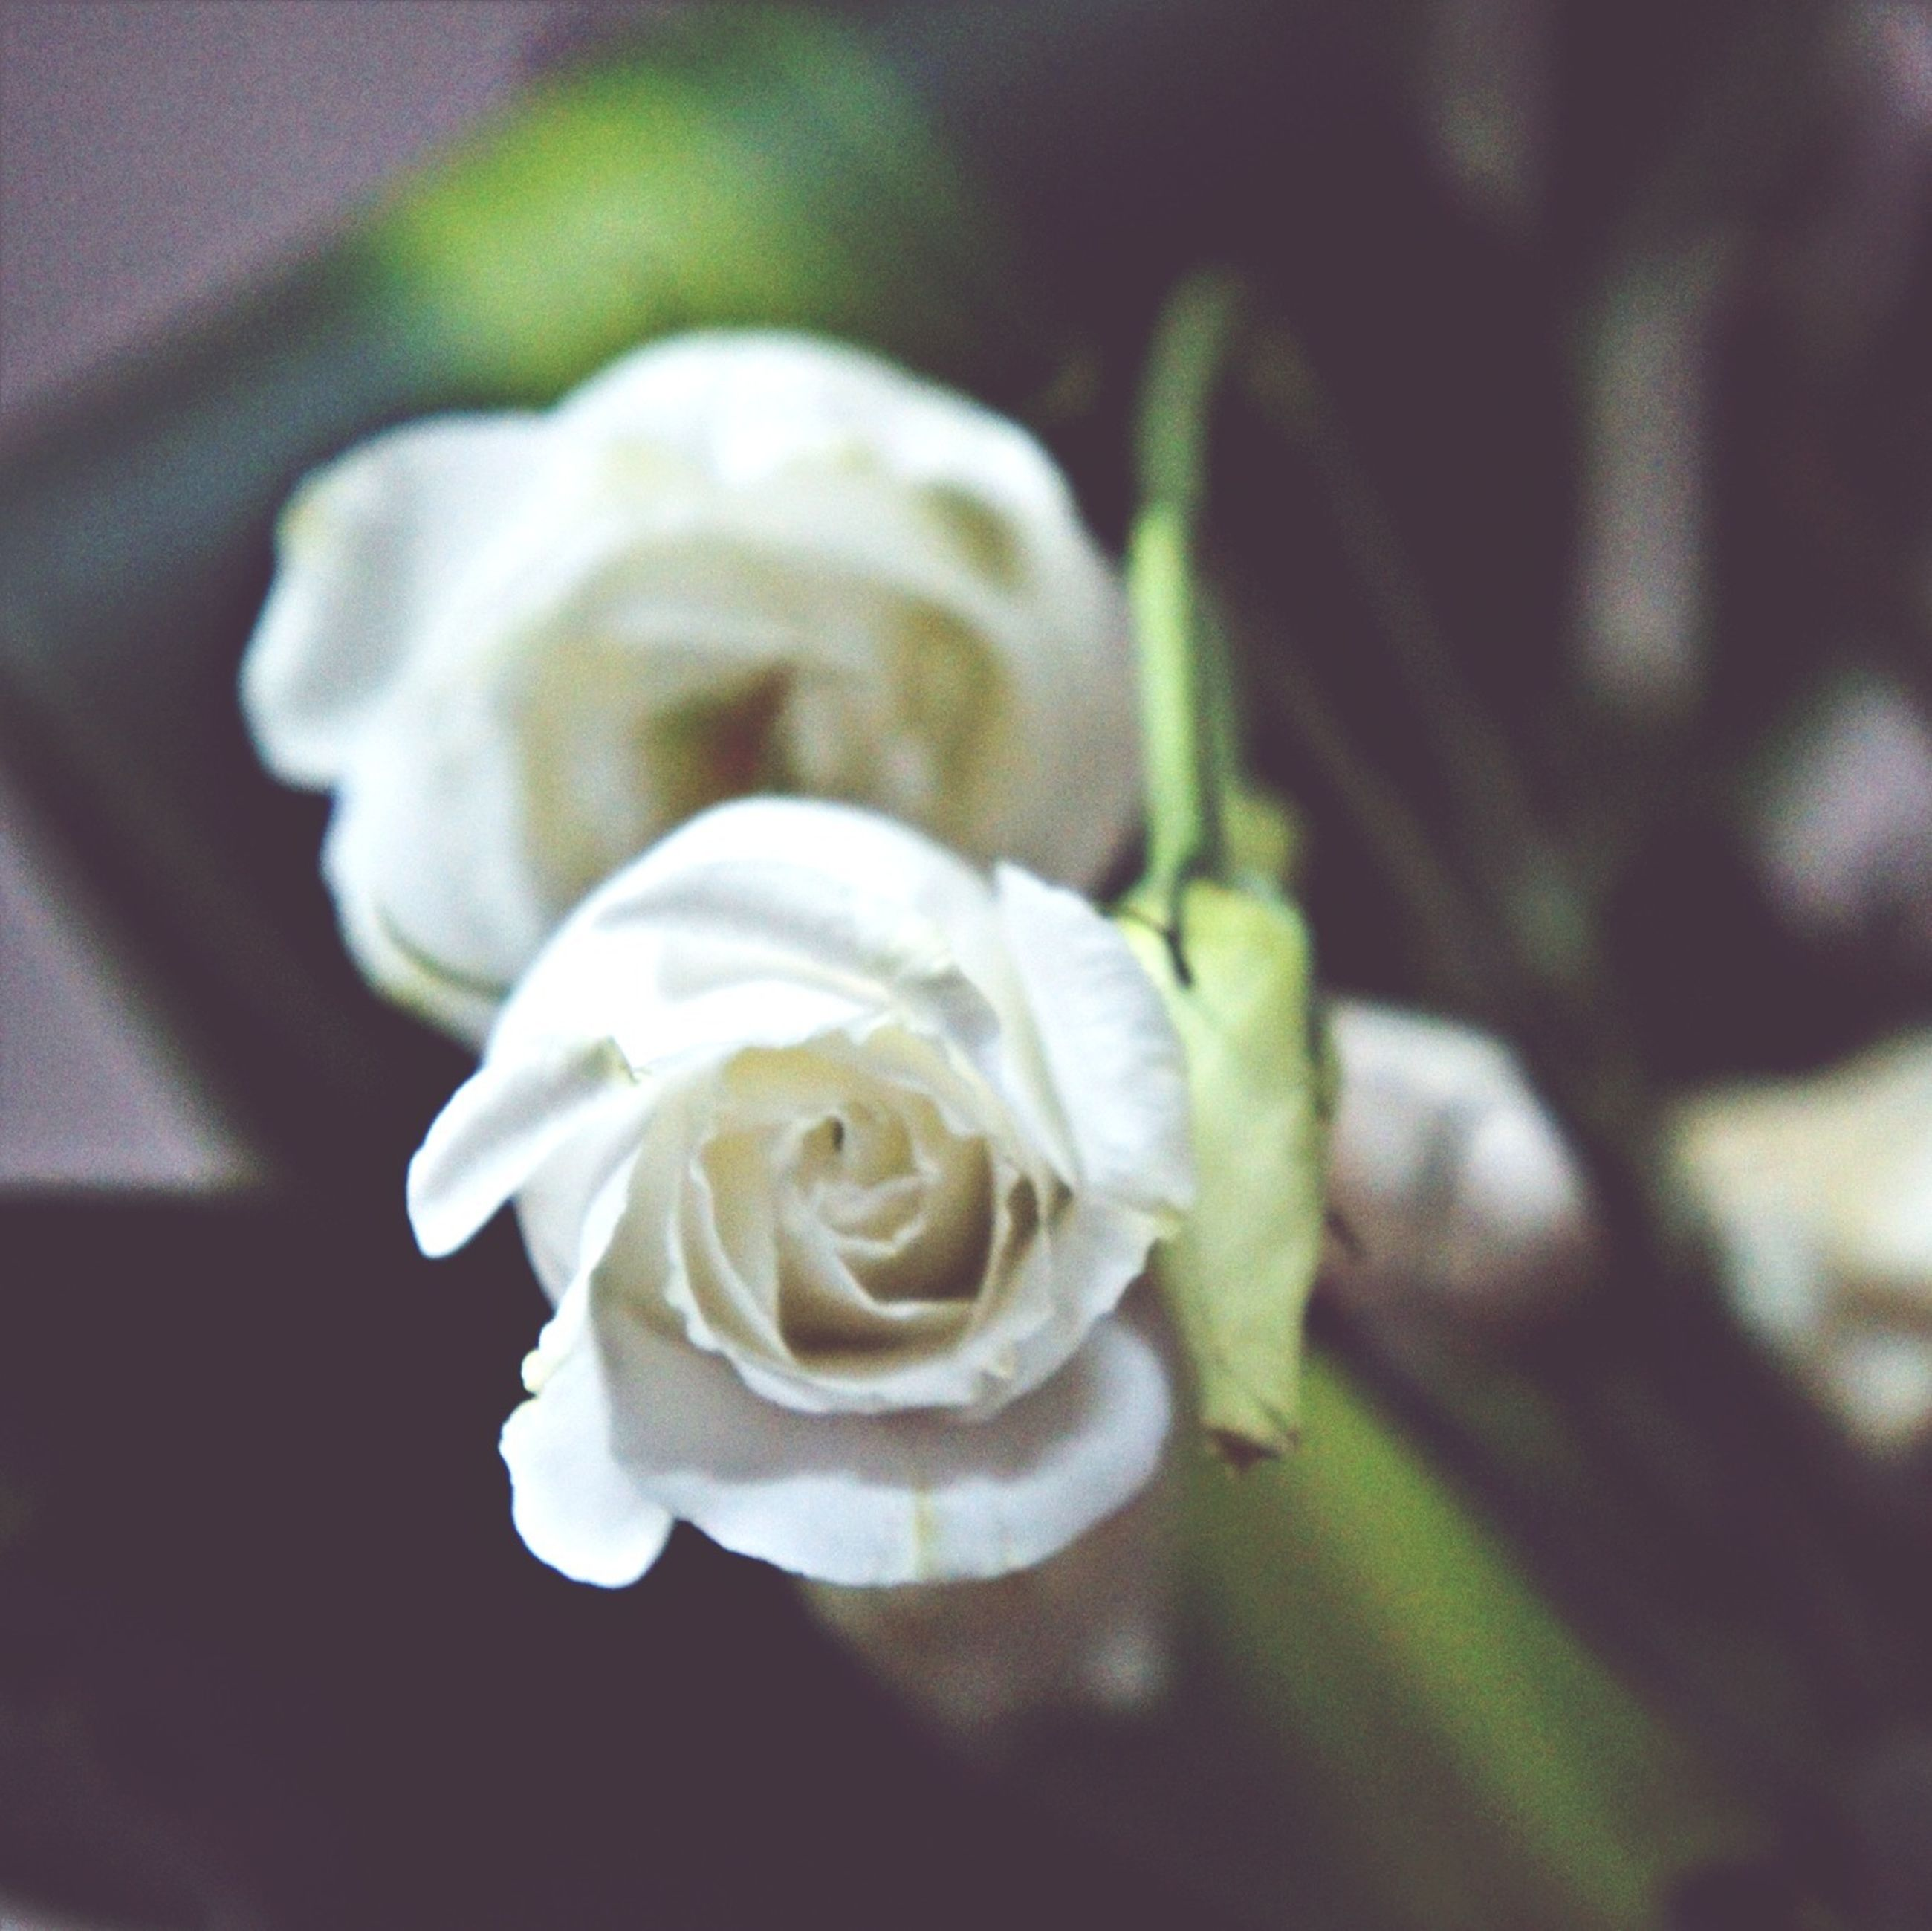 flower, petal, rose - flower, fragility, flower head, freshness, close-up, beauty in nature, growth, white color, focus on foreground, rose, nature, indoors, blooming, plant, single flower, in bloom, selective focus, blossom